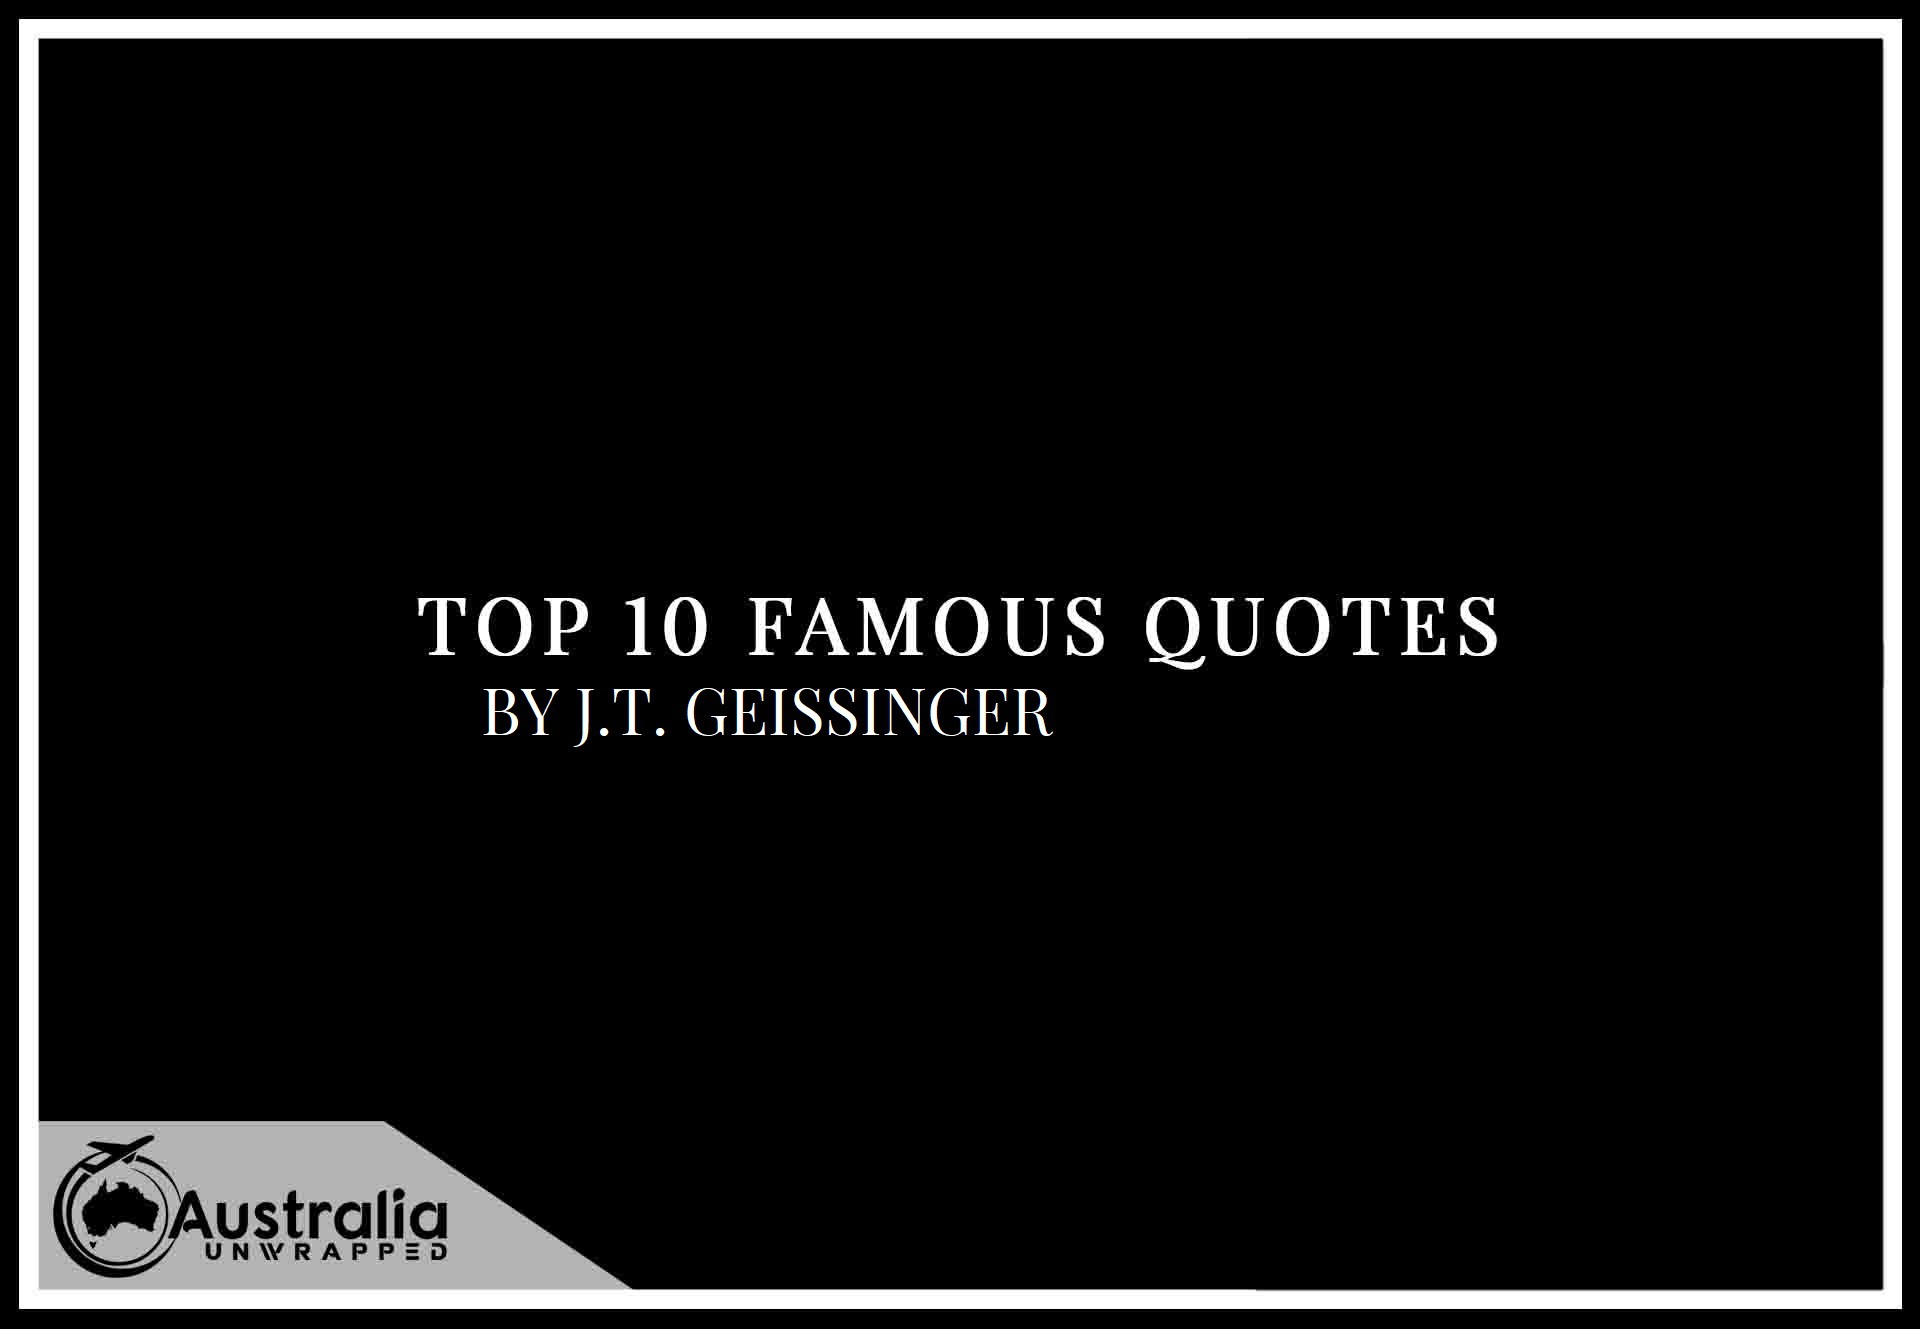 Top 10 Famous Quotes by Author J.T. Geissinger